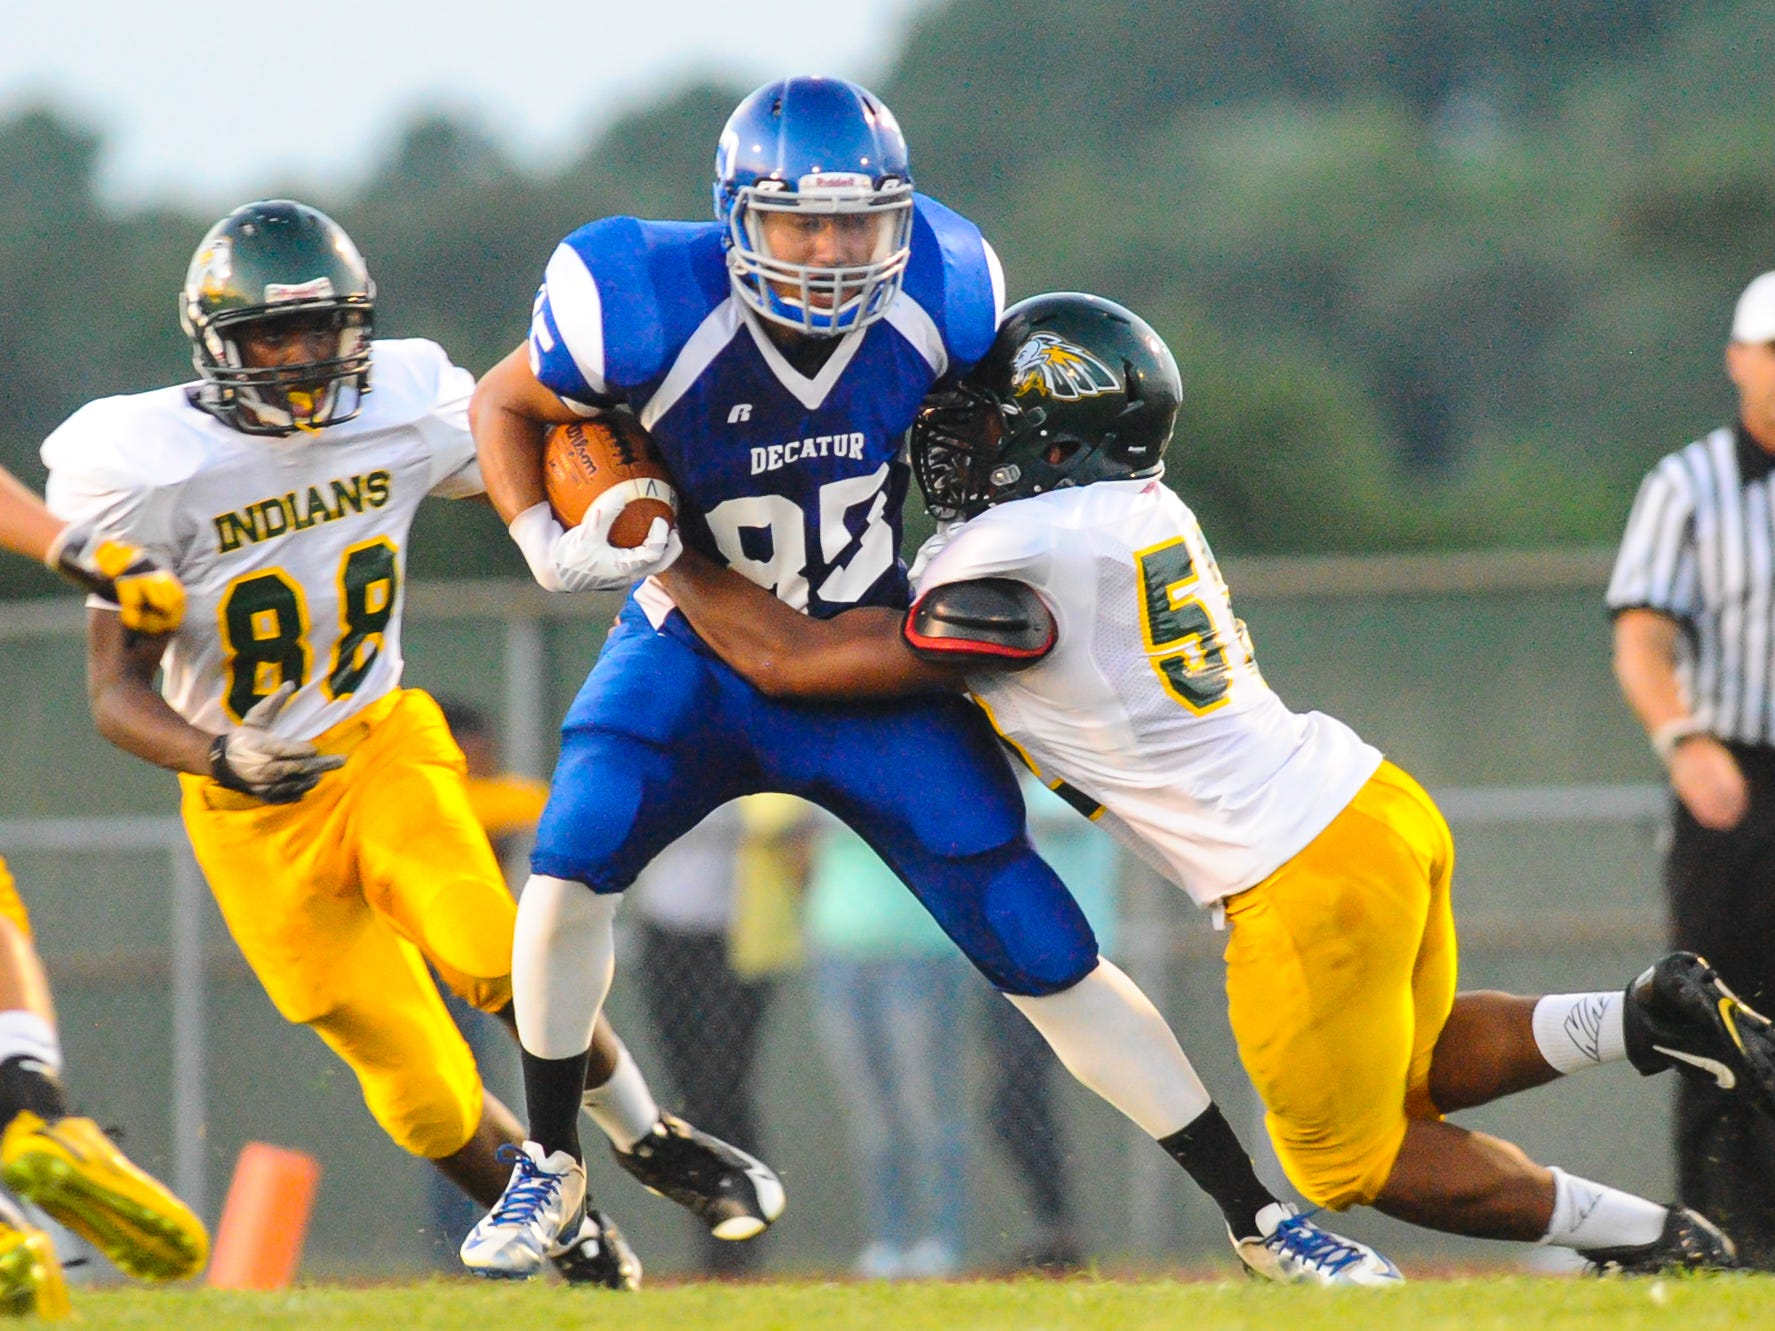 Stephen Decatur wide reciever Matt LeCompte is wrapped up by Indian River linebacker Lance Harmon in Berlin.